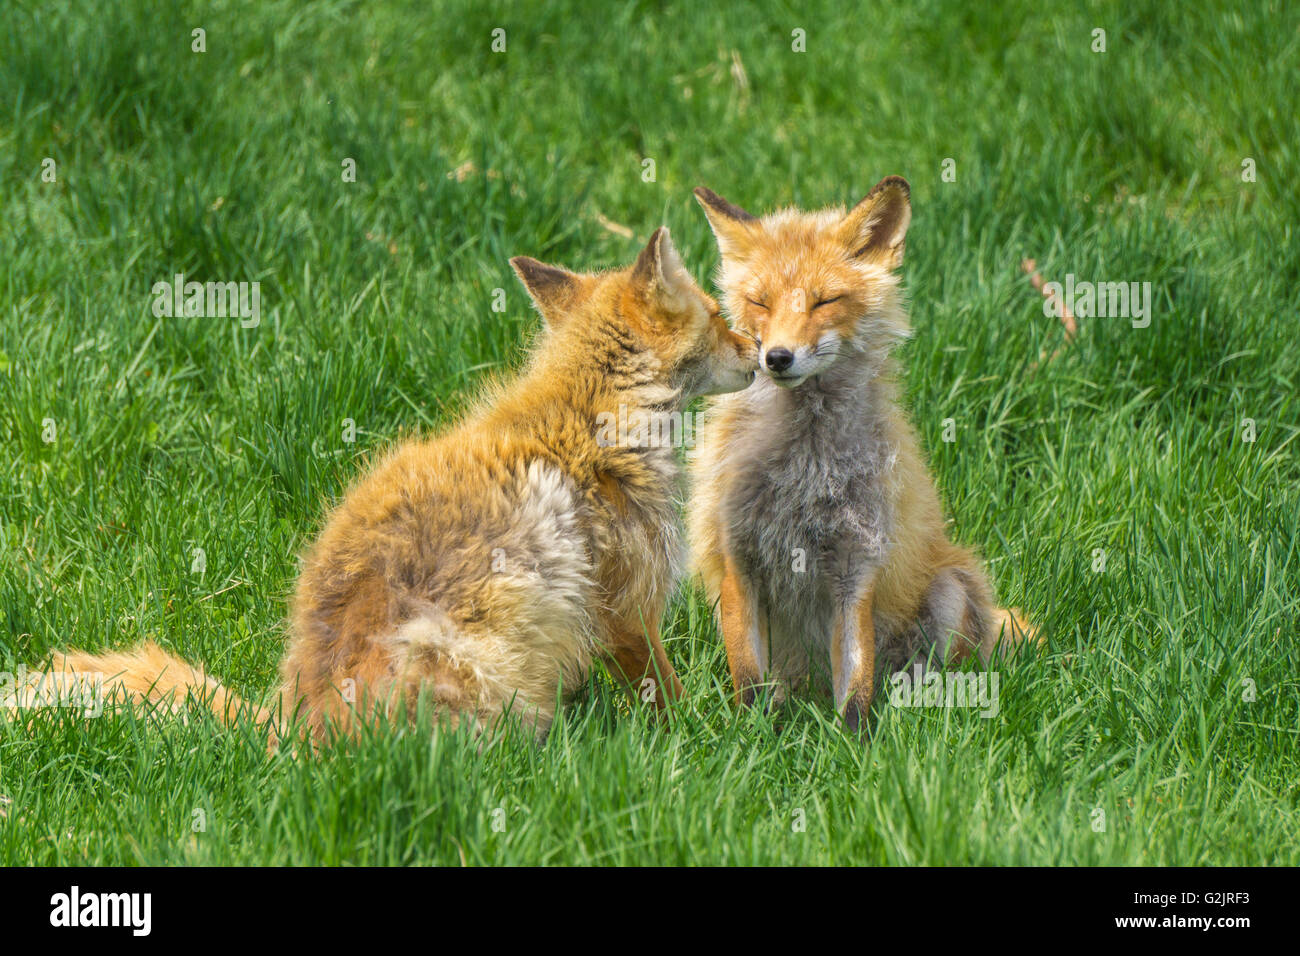 Friendly Foxes - Stock Image